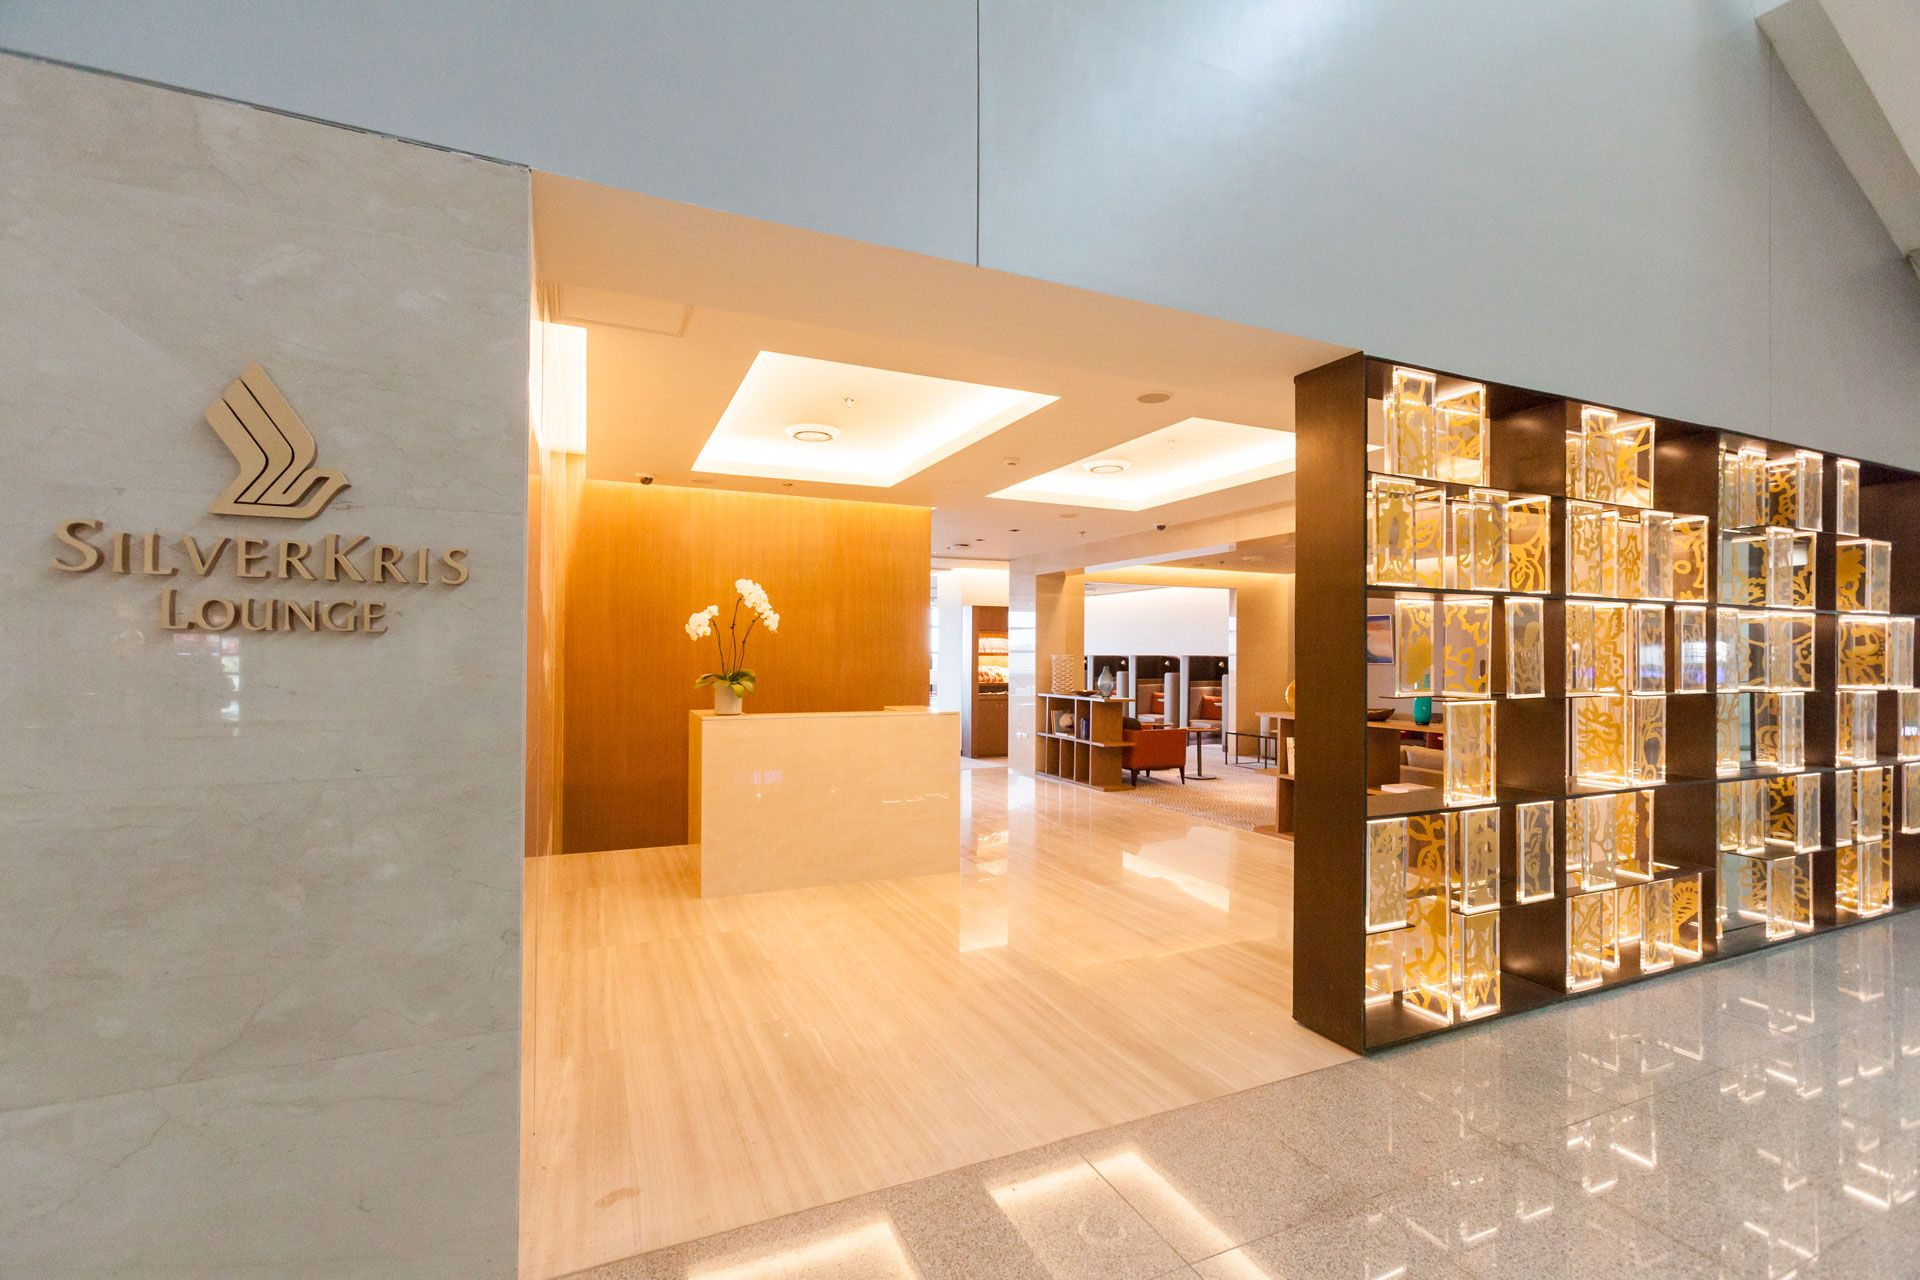 Home Away from Home: Singapore Airlines' SilverKris Lounge